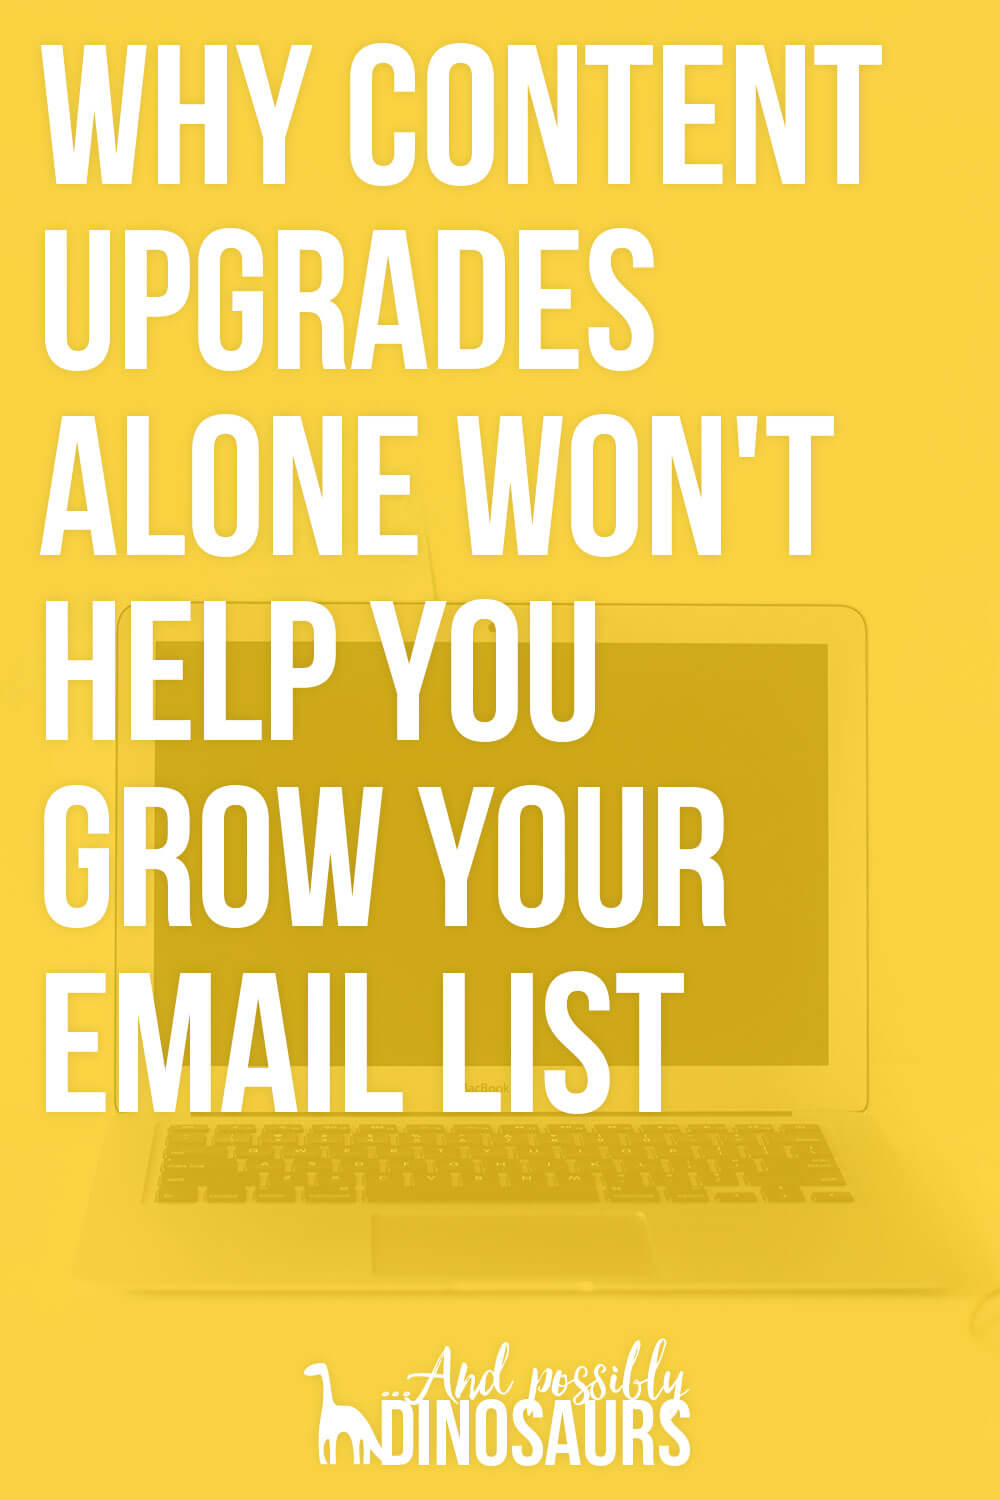 Content upgrades are an awesome way to grow your email list. But it's time to be honest: Content upgrades alone won't grow your list! Say whaaaa? Click through for the explanation.